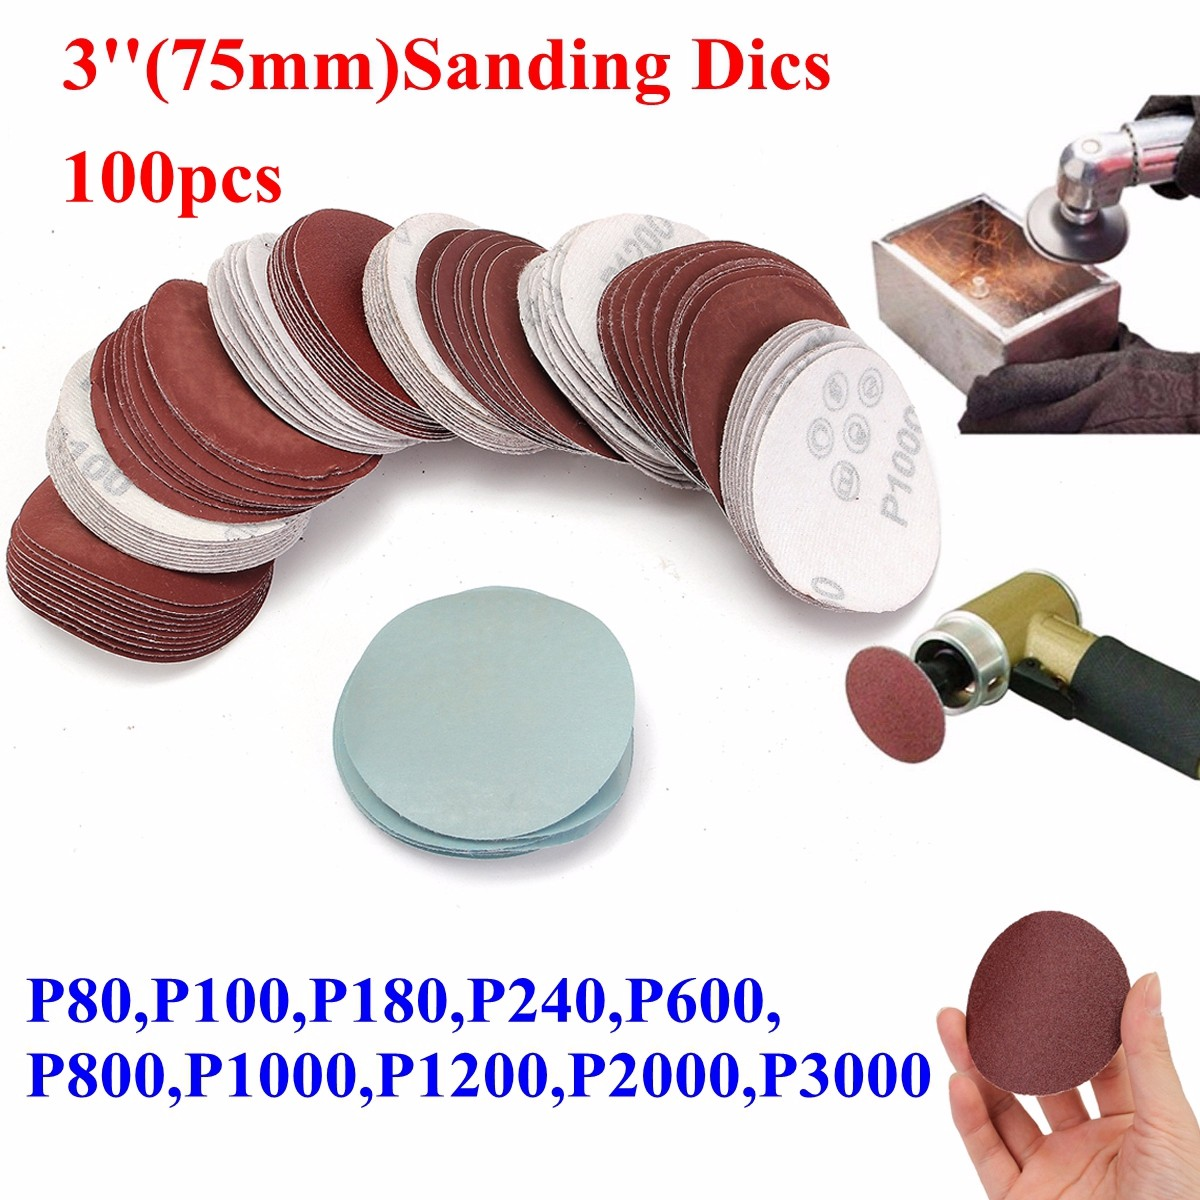 100pcs 3 Inch 75mm Sanding Disc Sandpaper 80 To 3000 Grit Abrasives Tools For General Polishing Buffing Discs Freeshipping